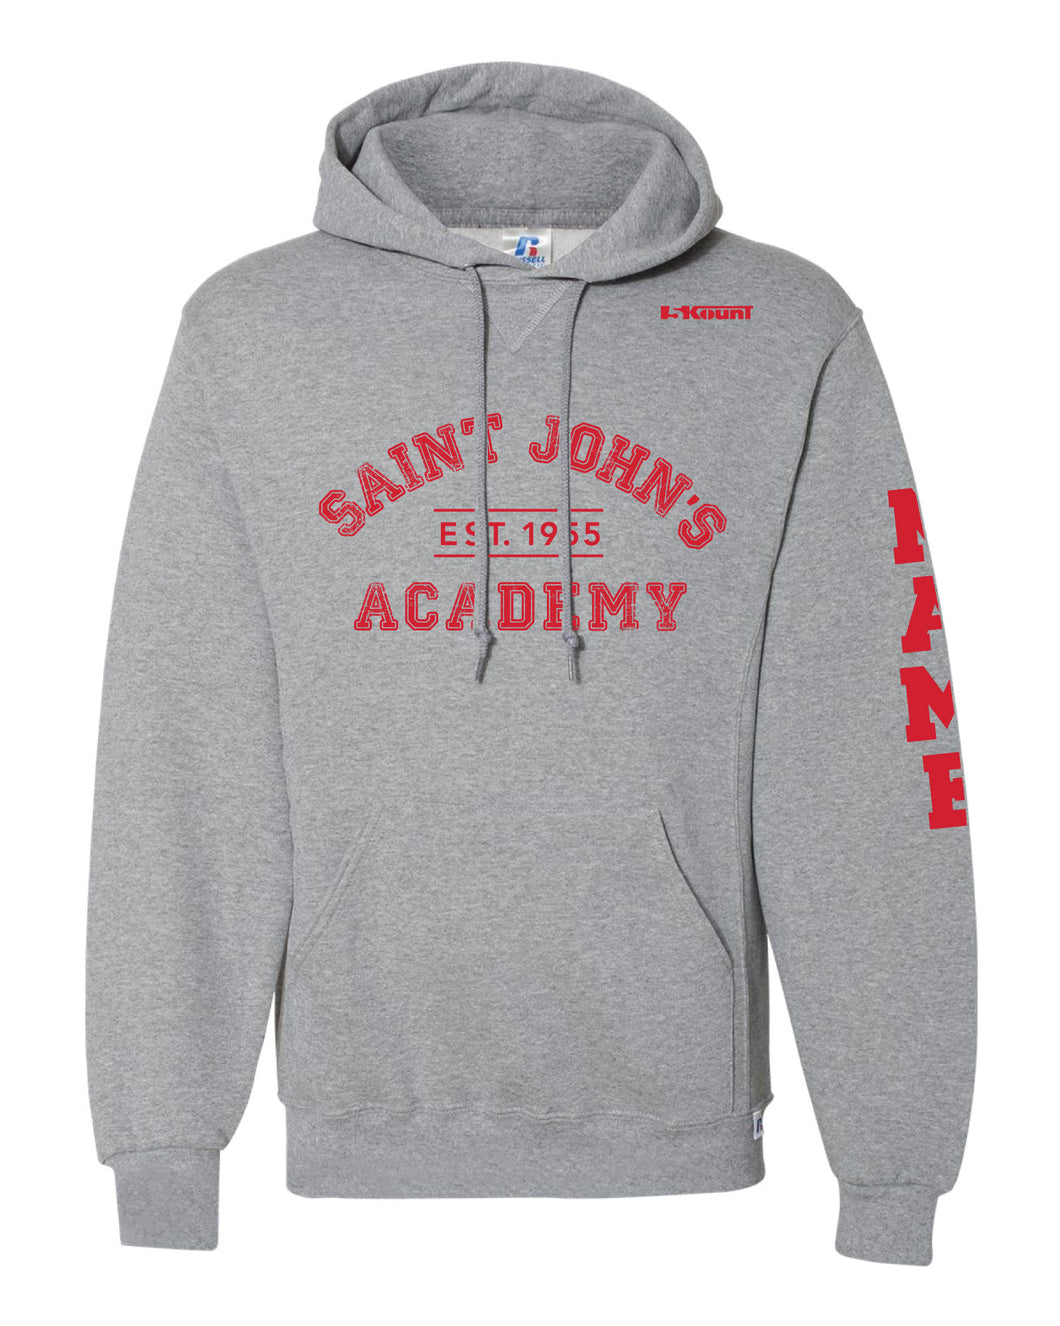 Saint John's Academy Russell Athletic Cotton Hoodie - Grey